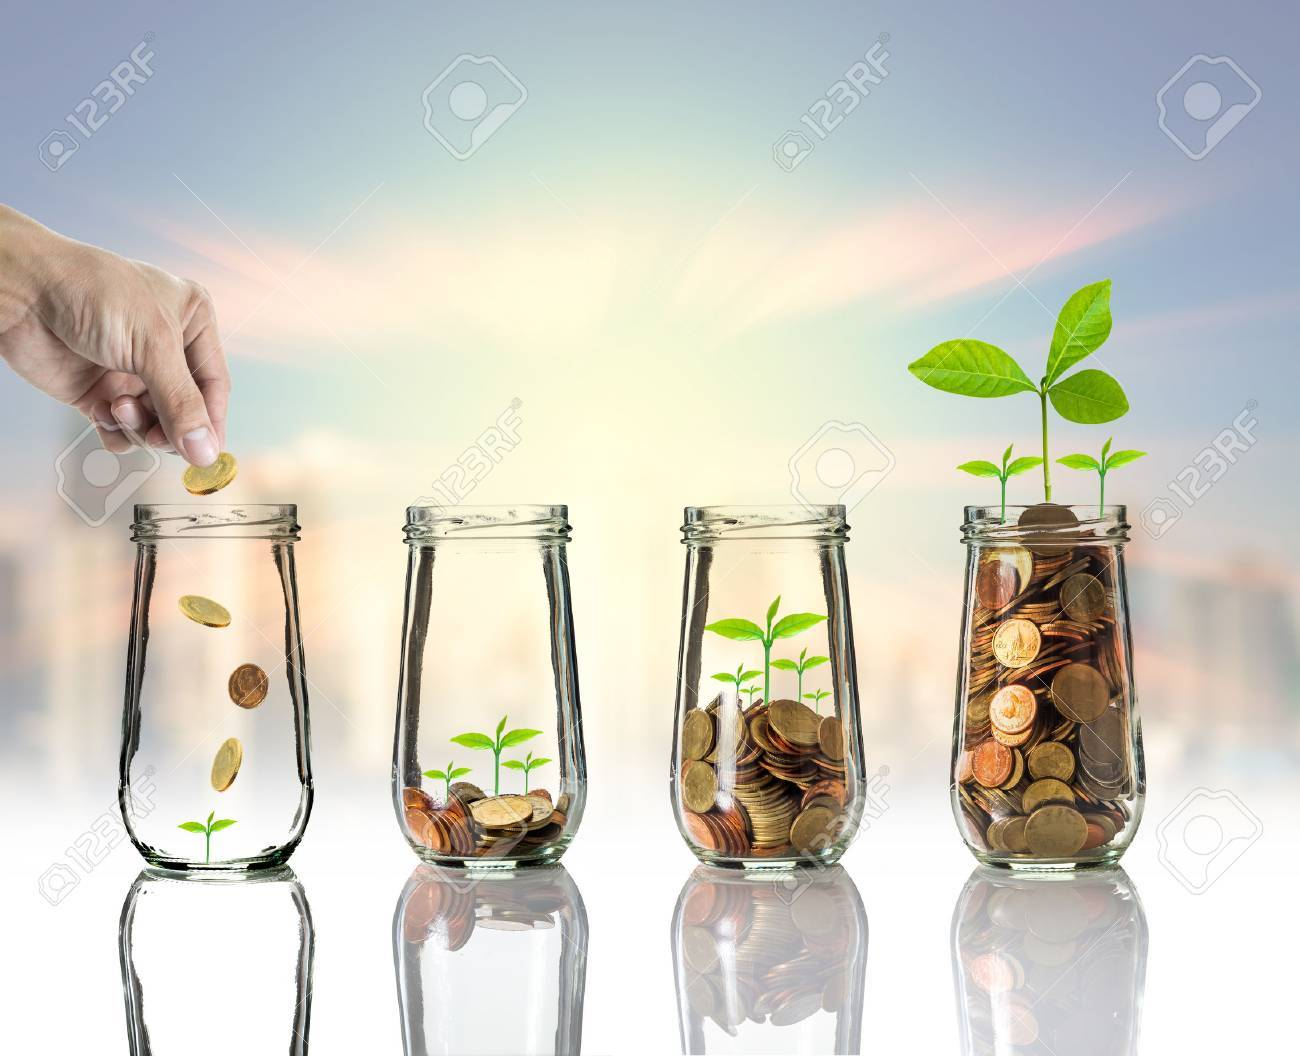 Hand putting Gold coins and seed in clear bottle on cityscape photo blurred cityscape background,Business investment growth concept - 55319421